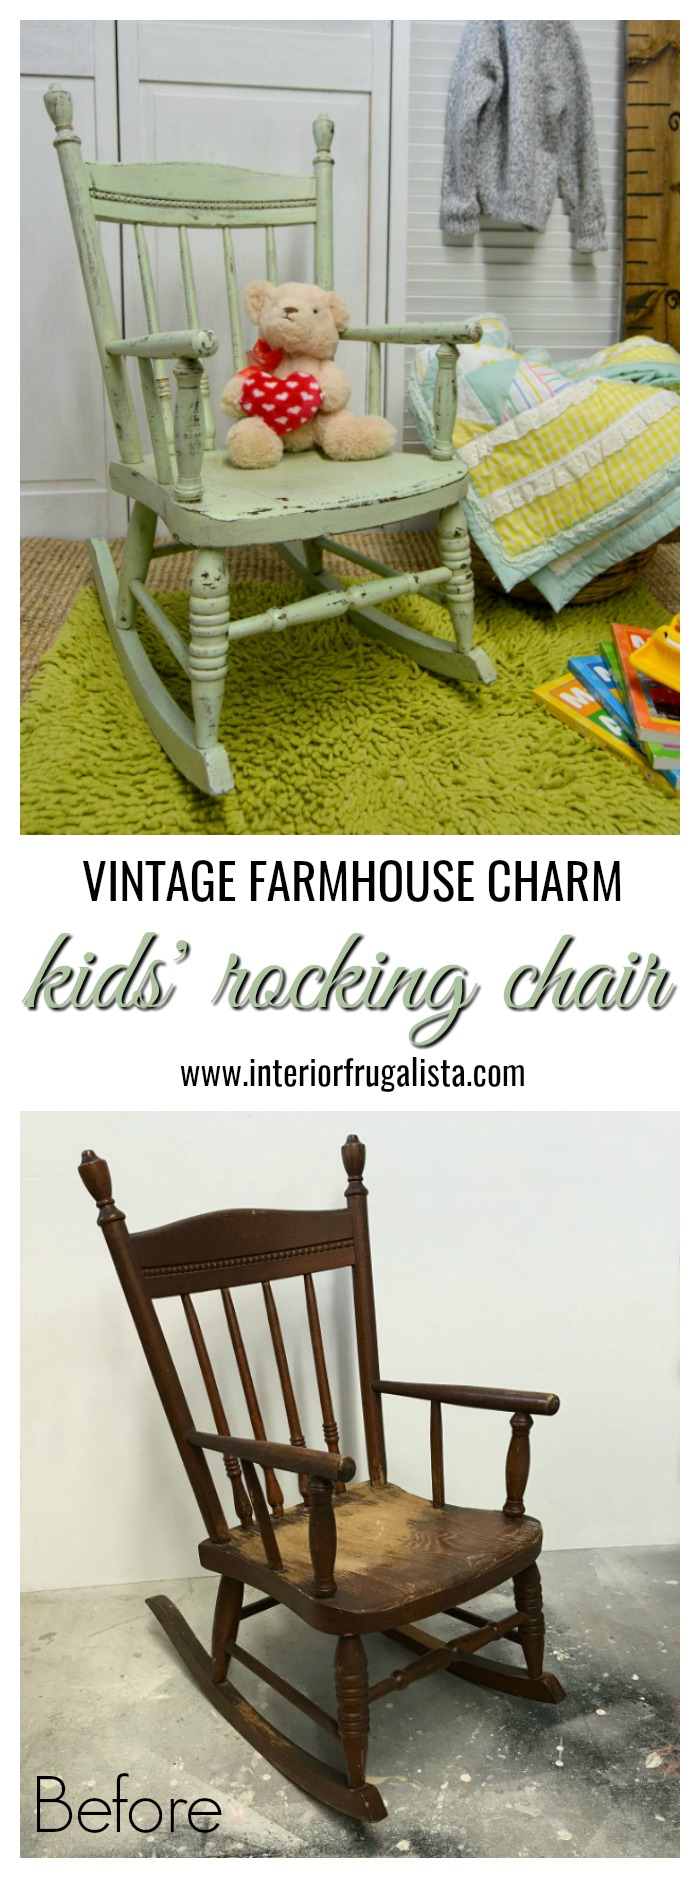 A rustic rocking chair makeover with farmhouse style for a child. It's a quick and easy upcycle for a solid wood vintage toddler rocker painted green. #woodenrockingchair #kidsrockingchair #childrensrockingchair #toddlerrockingchair